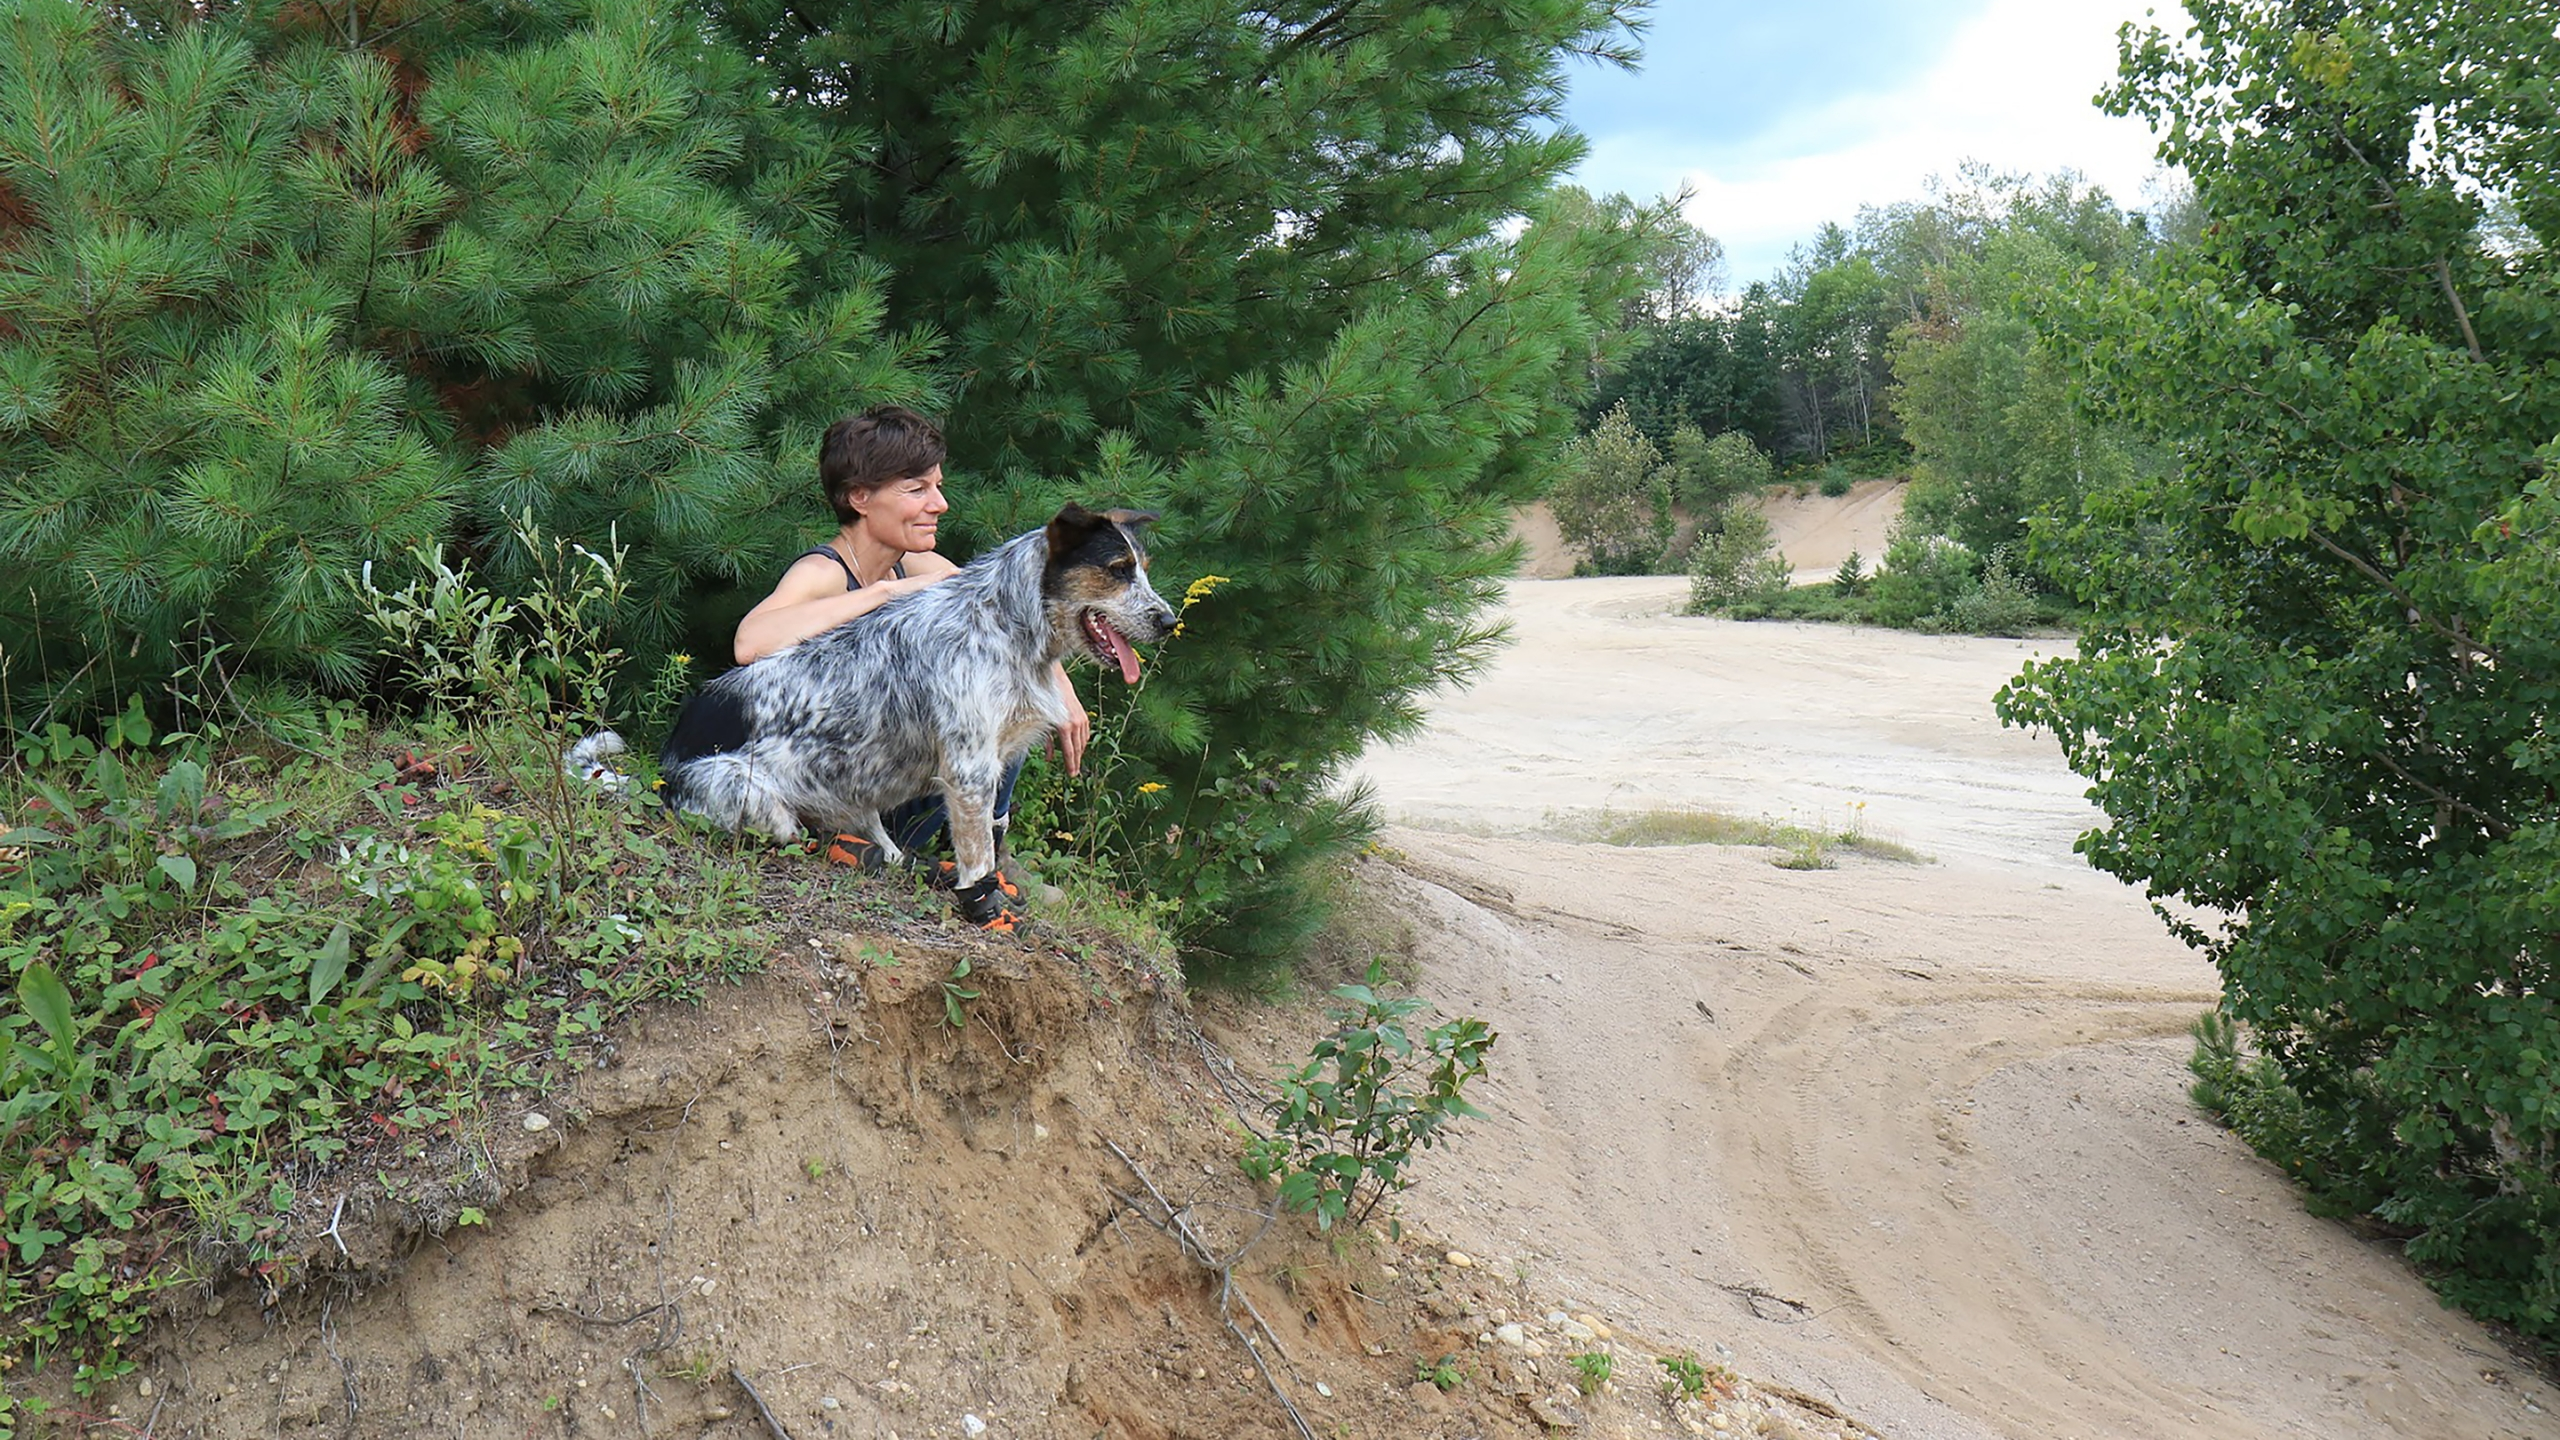 Muttluks founder Marianne Bertrand with a grey spotted dog sitting under a tree